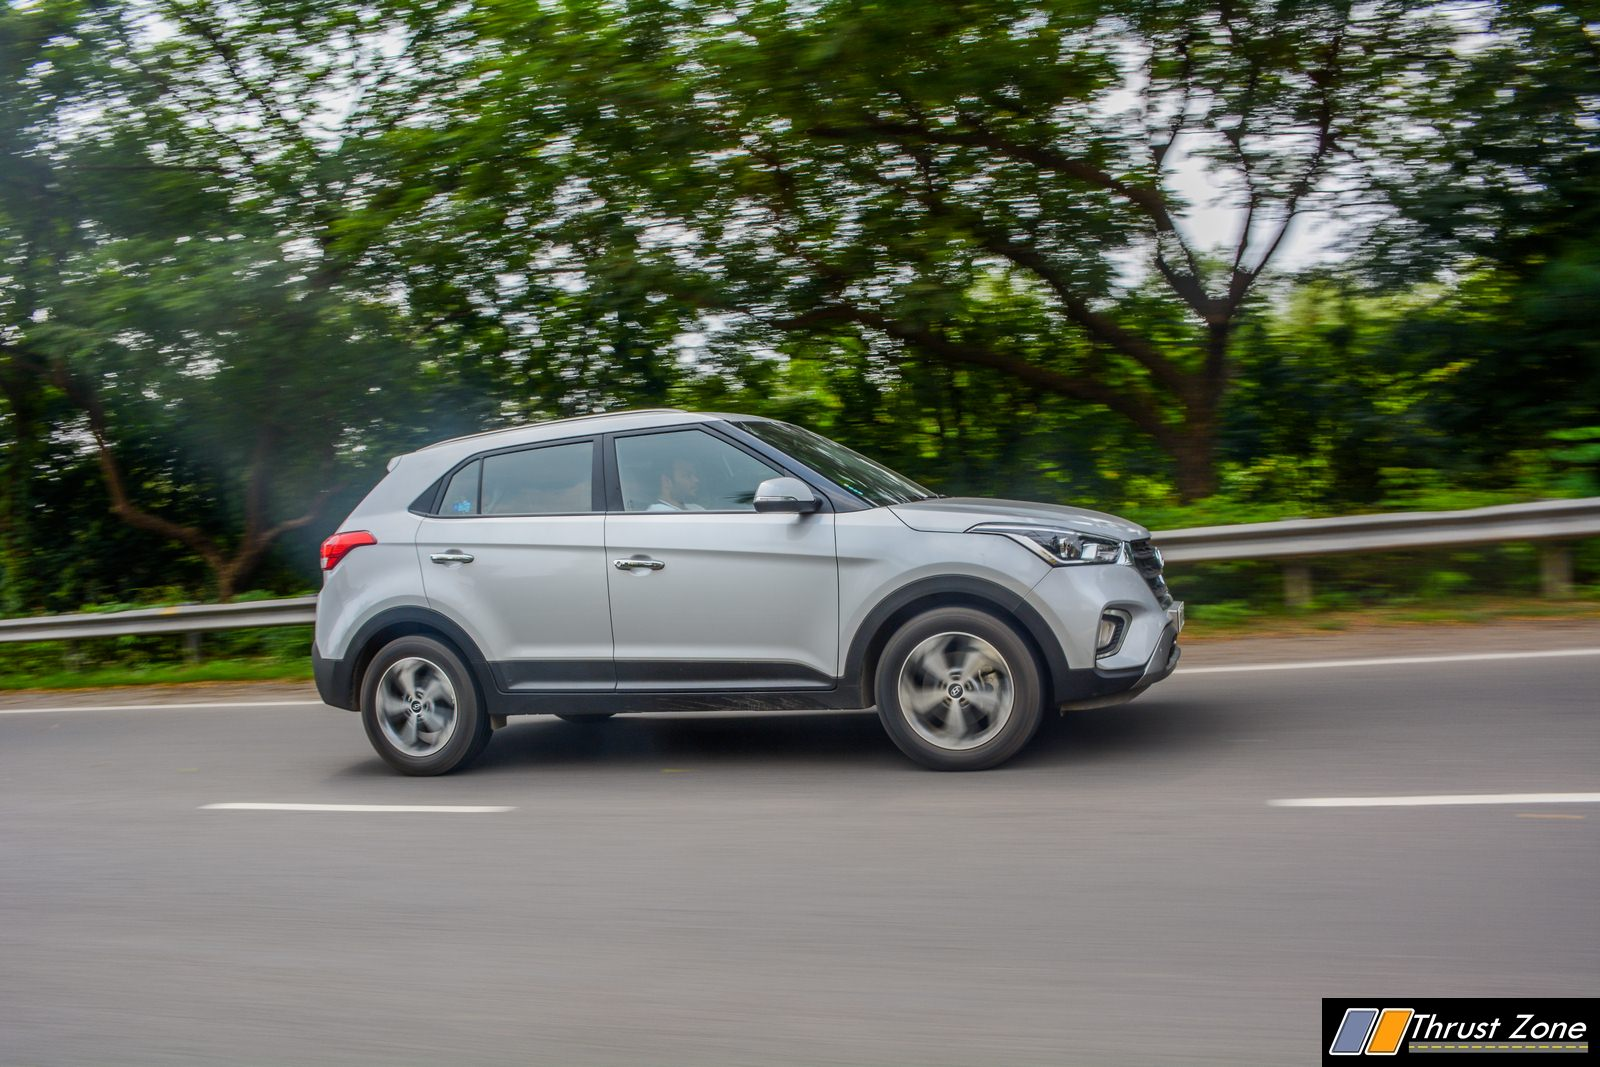 https://www.thrustzone.com/wp-content/uploads/2019/05/2019-hyundai-creta-facelift-diesel-review-1.jpg